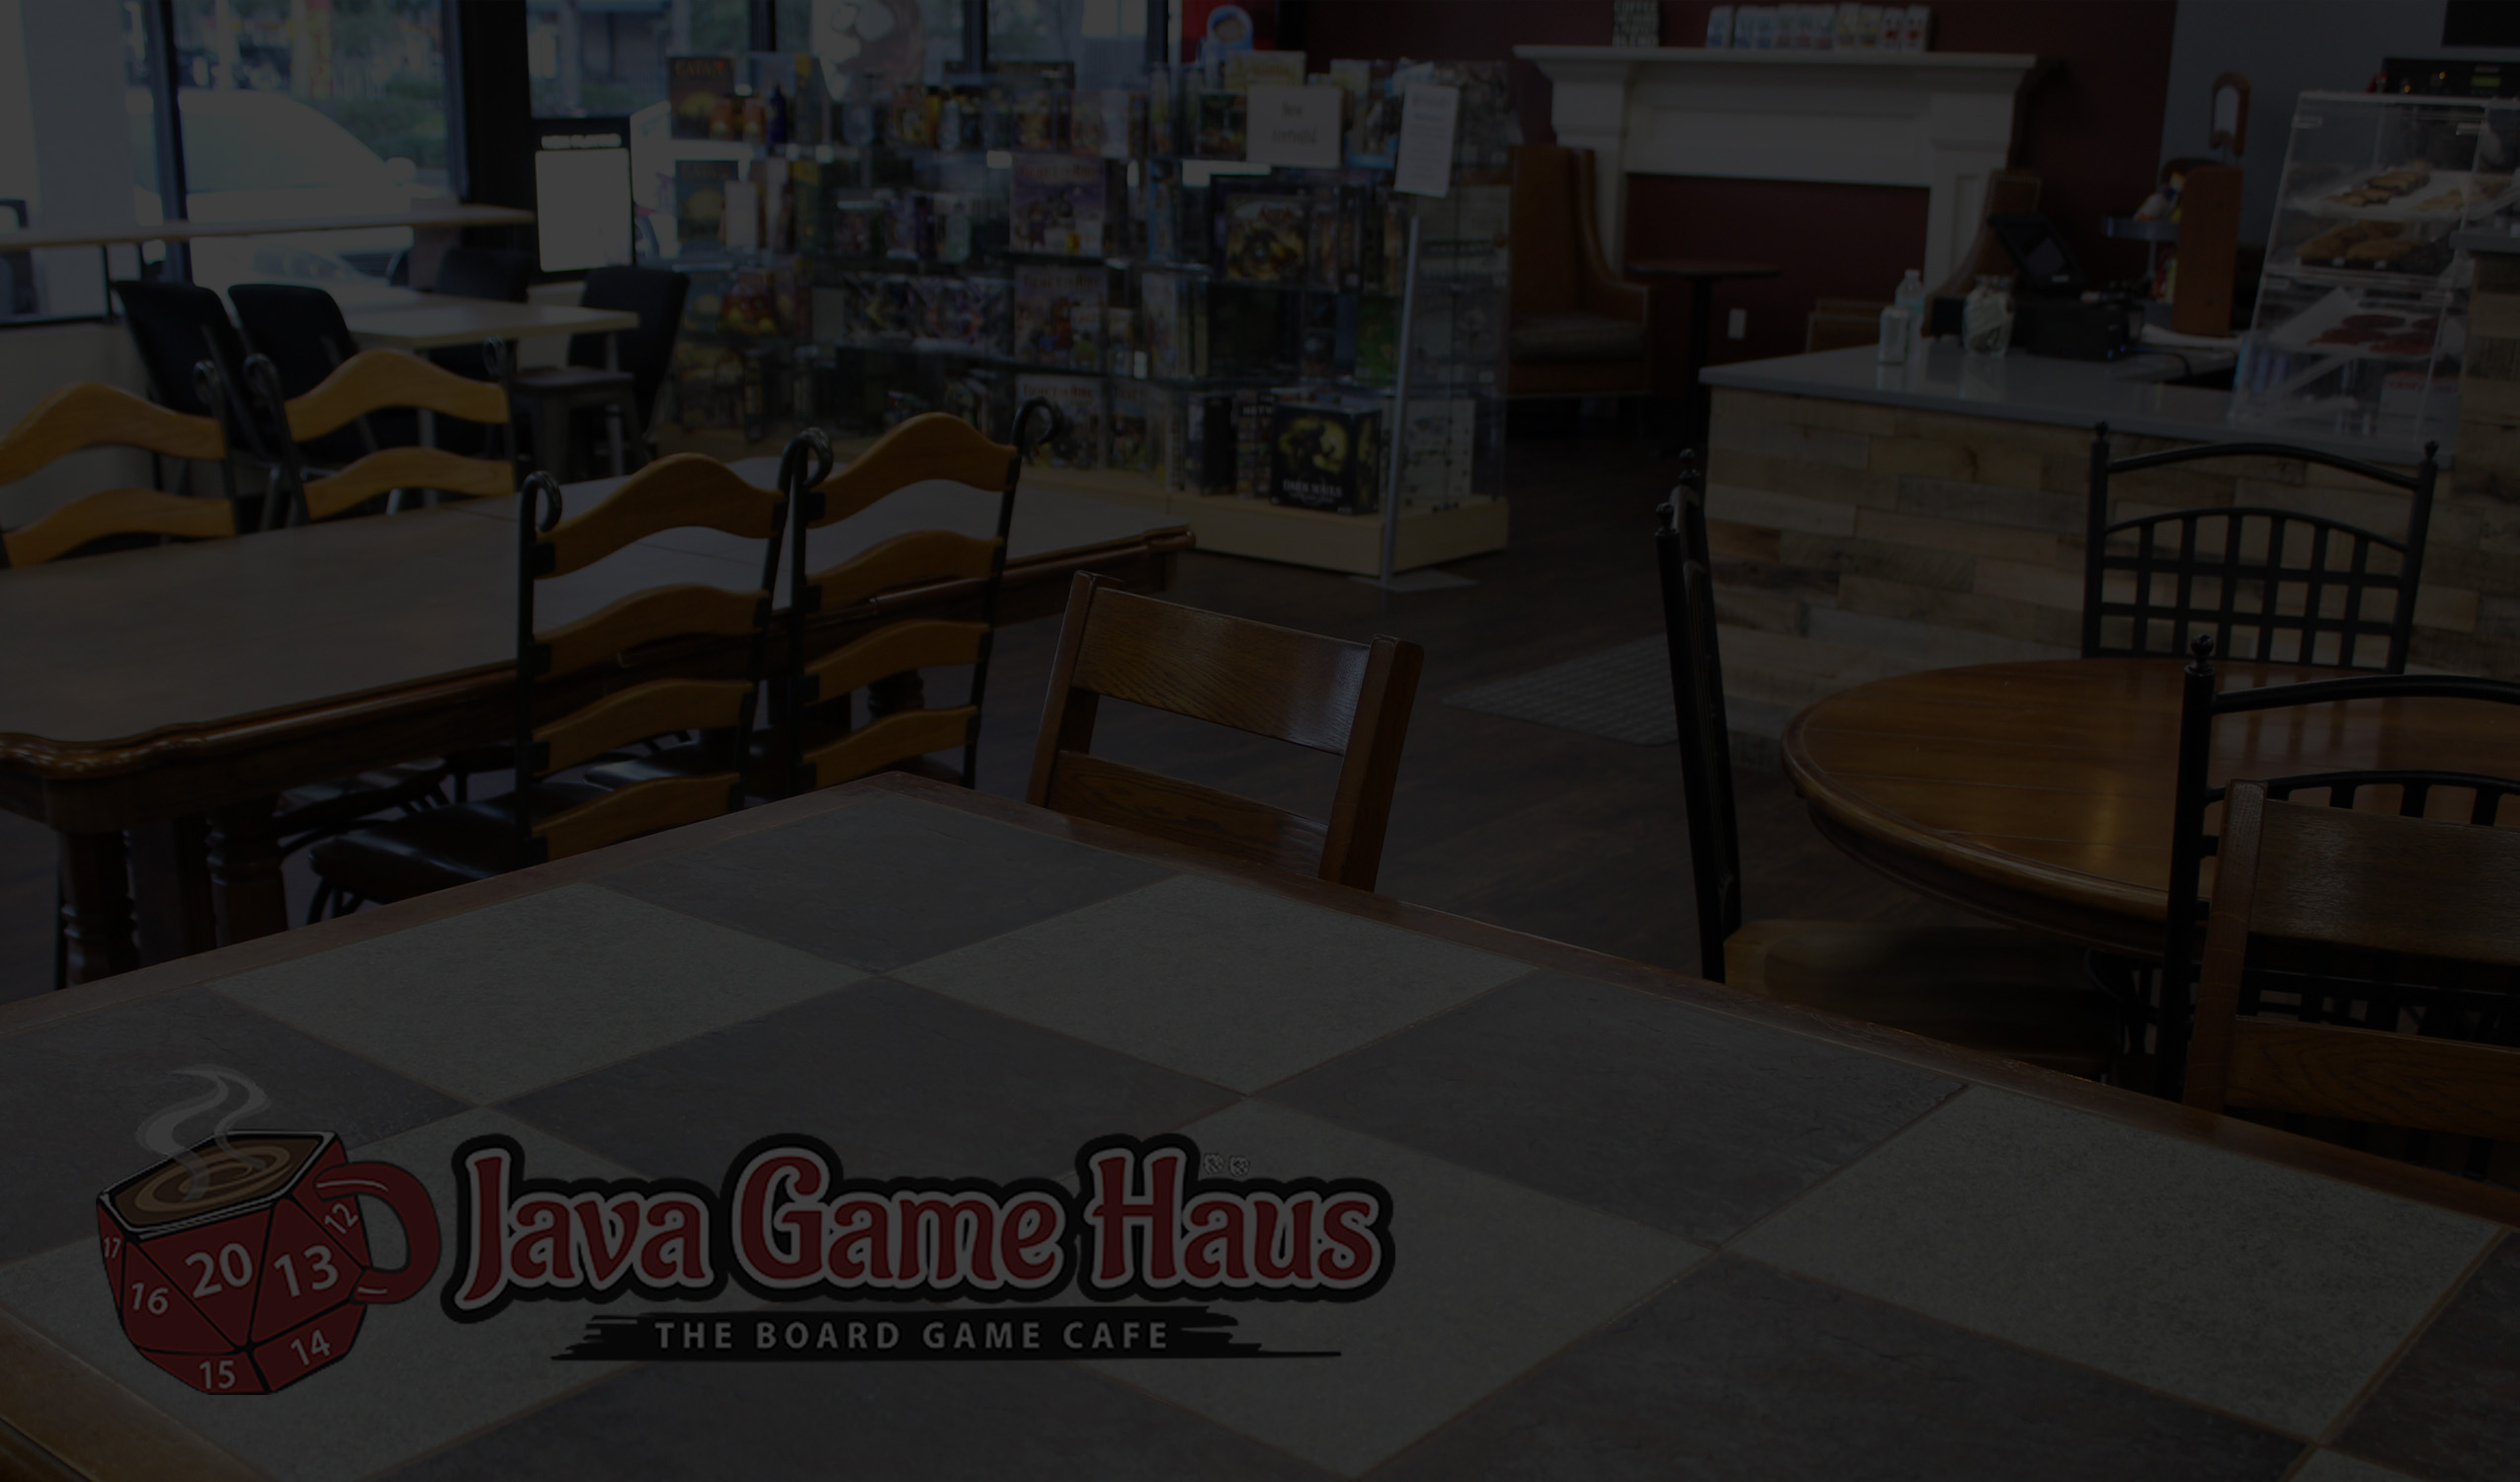 Digital Gift Card Java Game Haus Jacksonvilles Board Game Cafe - Digital board game table